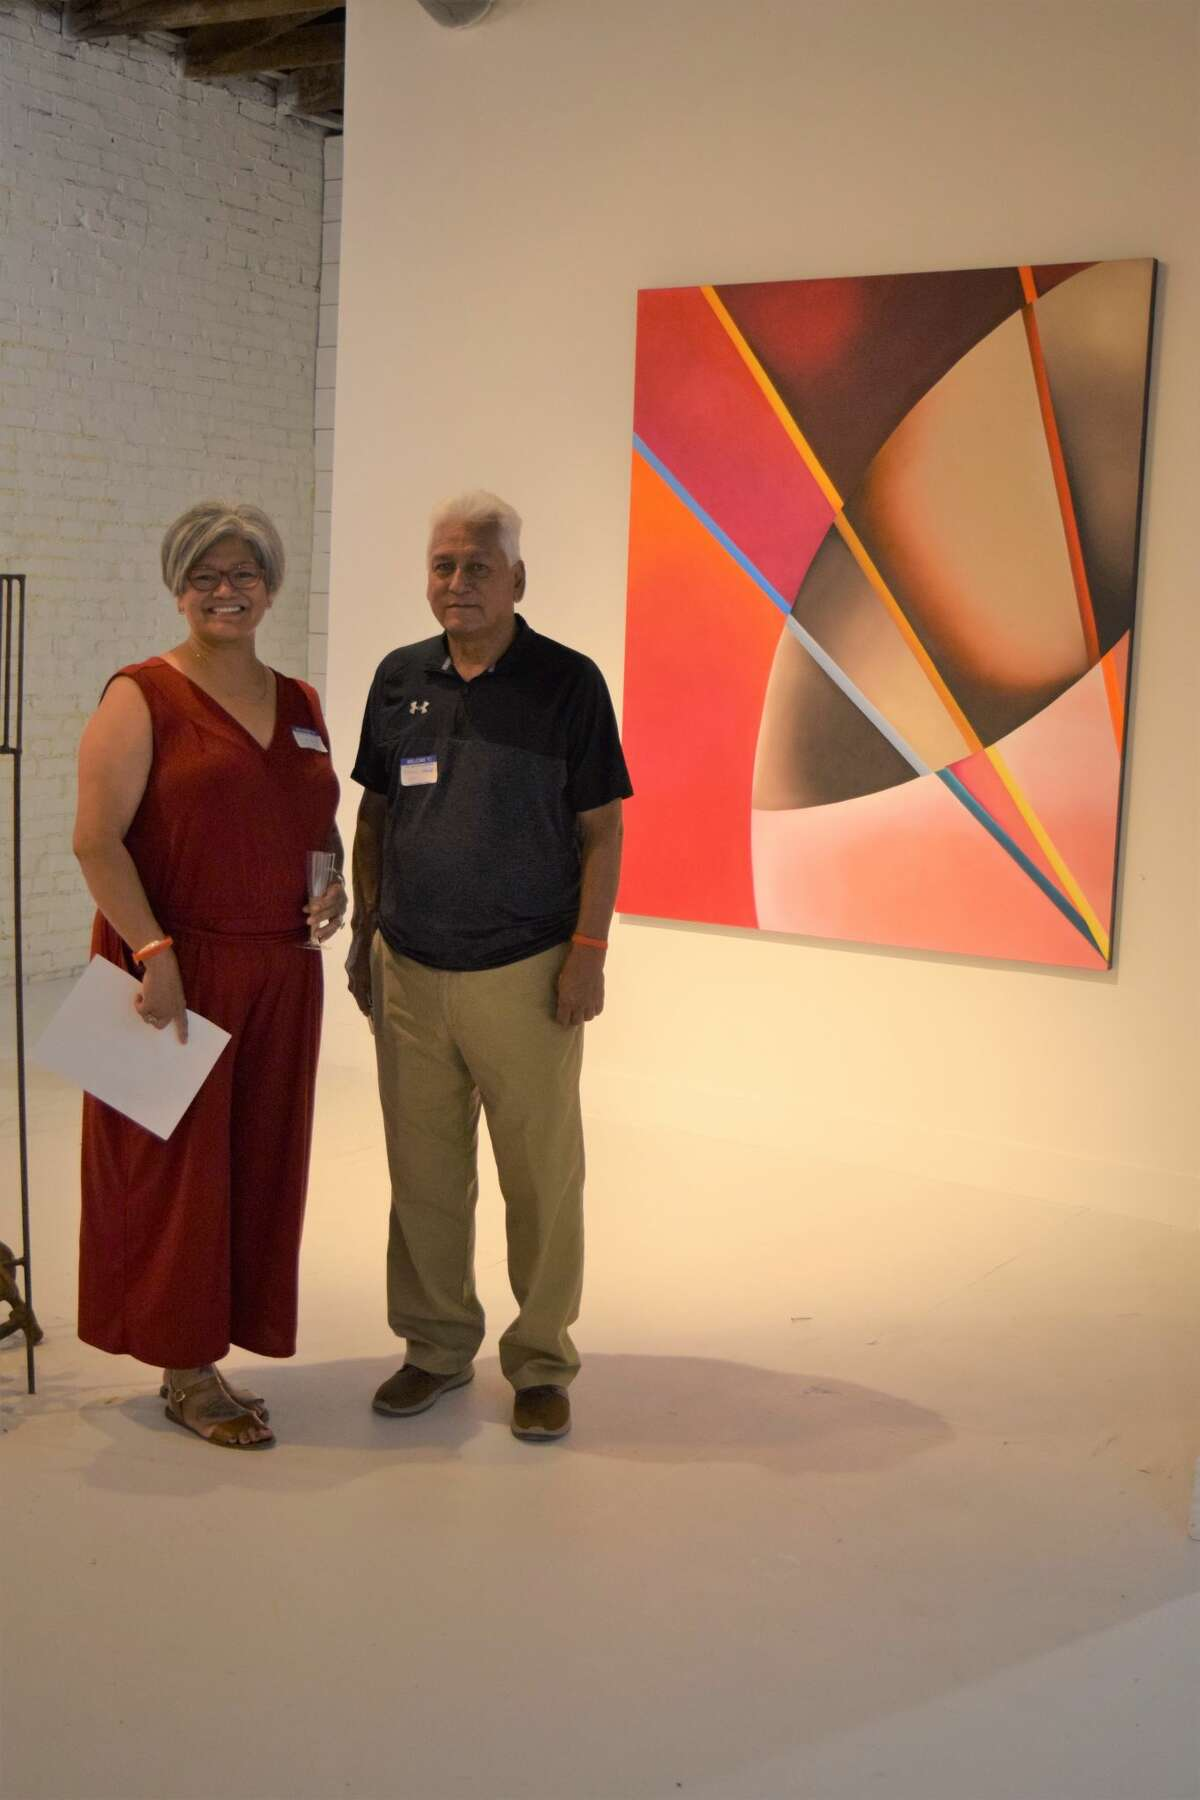 Shondai Baca and her father, Manuel Nagar, were among those who stopped by to take in the artworks. Baca is a 1989 PHS graduate and Nagar graduated in 1964.